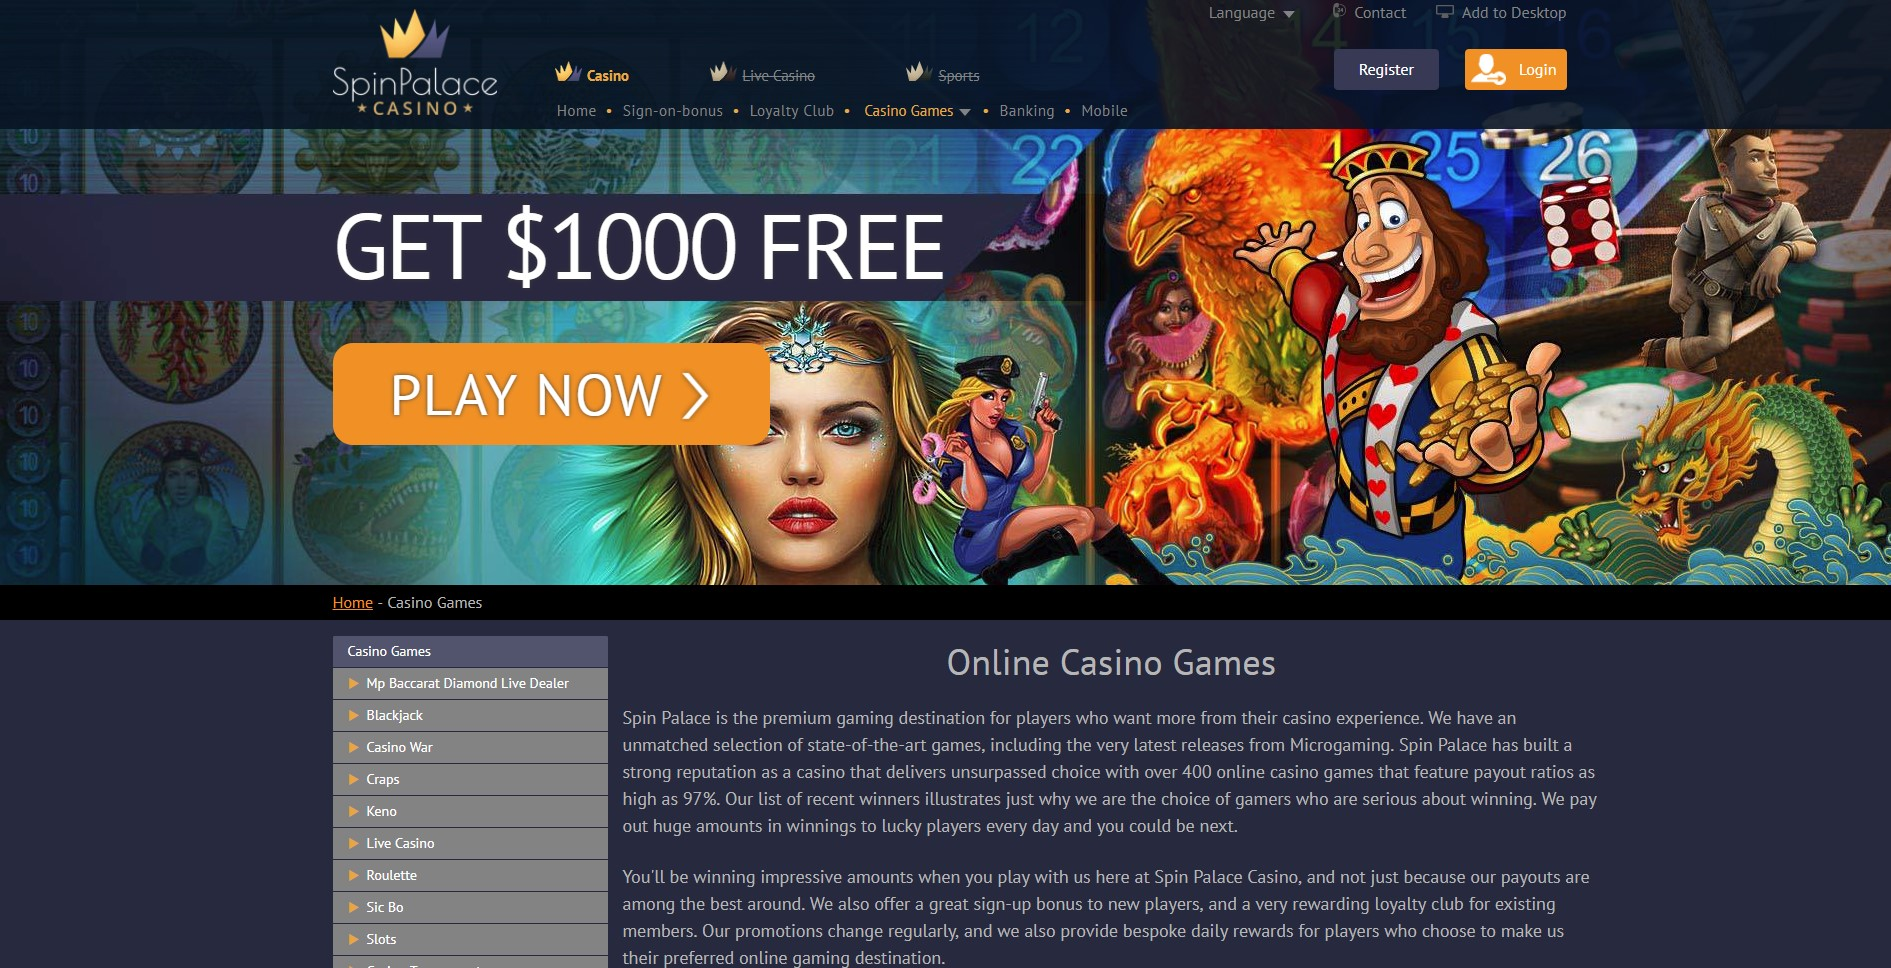 All Casino Games Page at Spin Palace